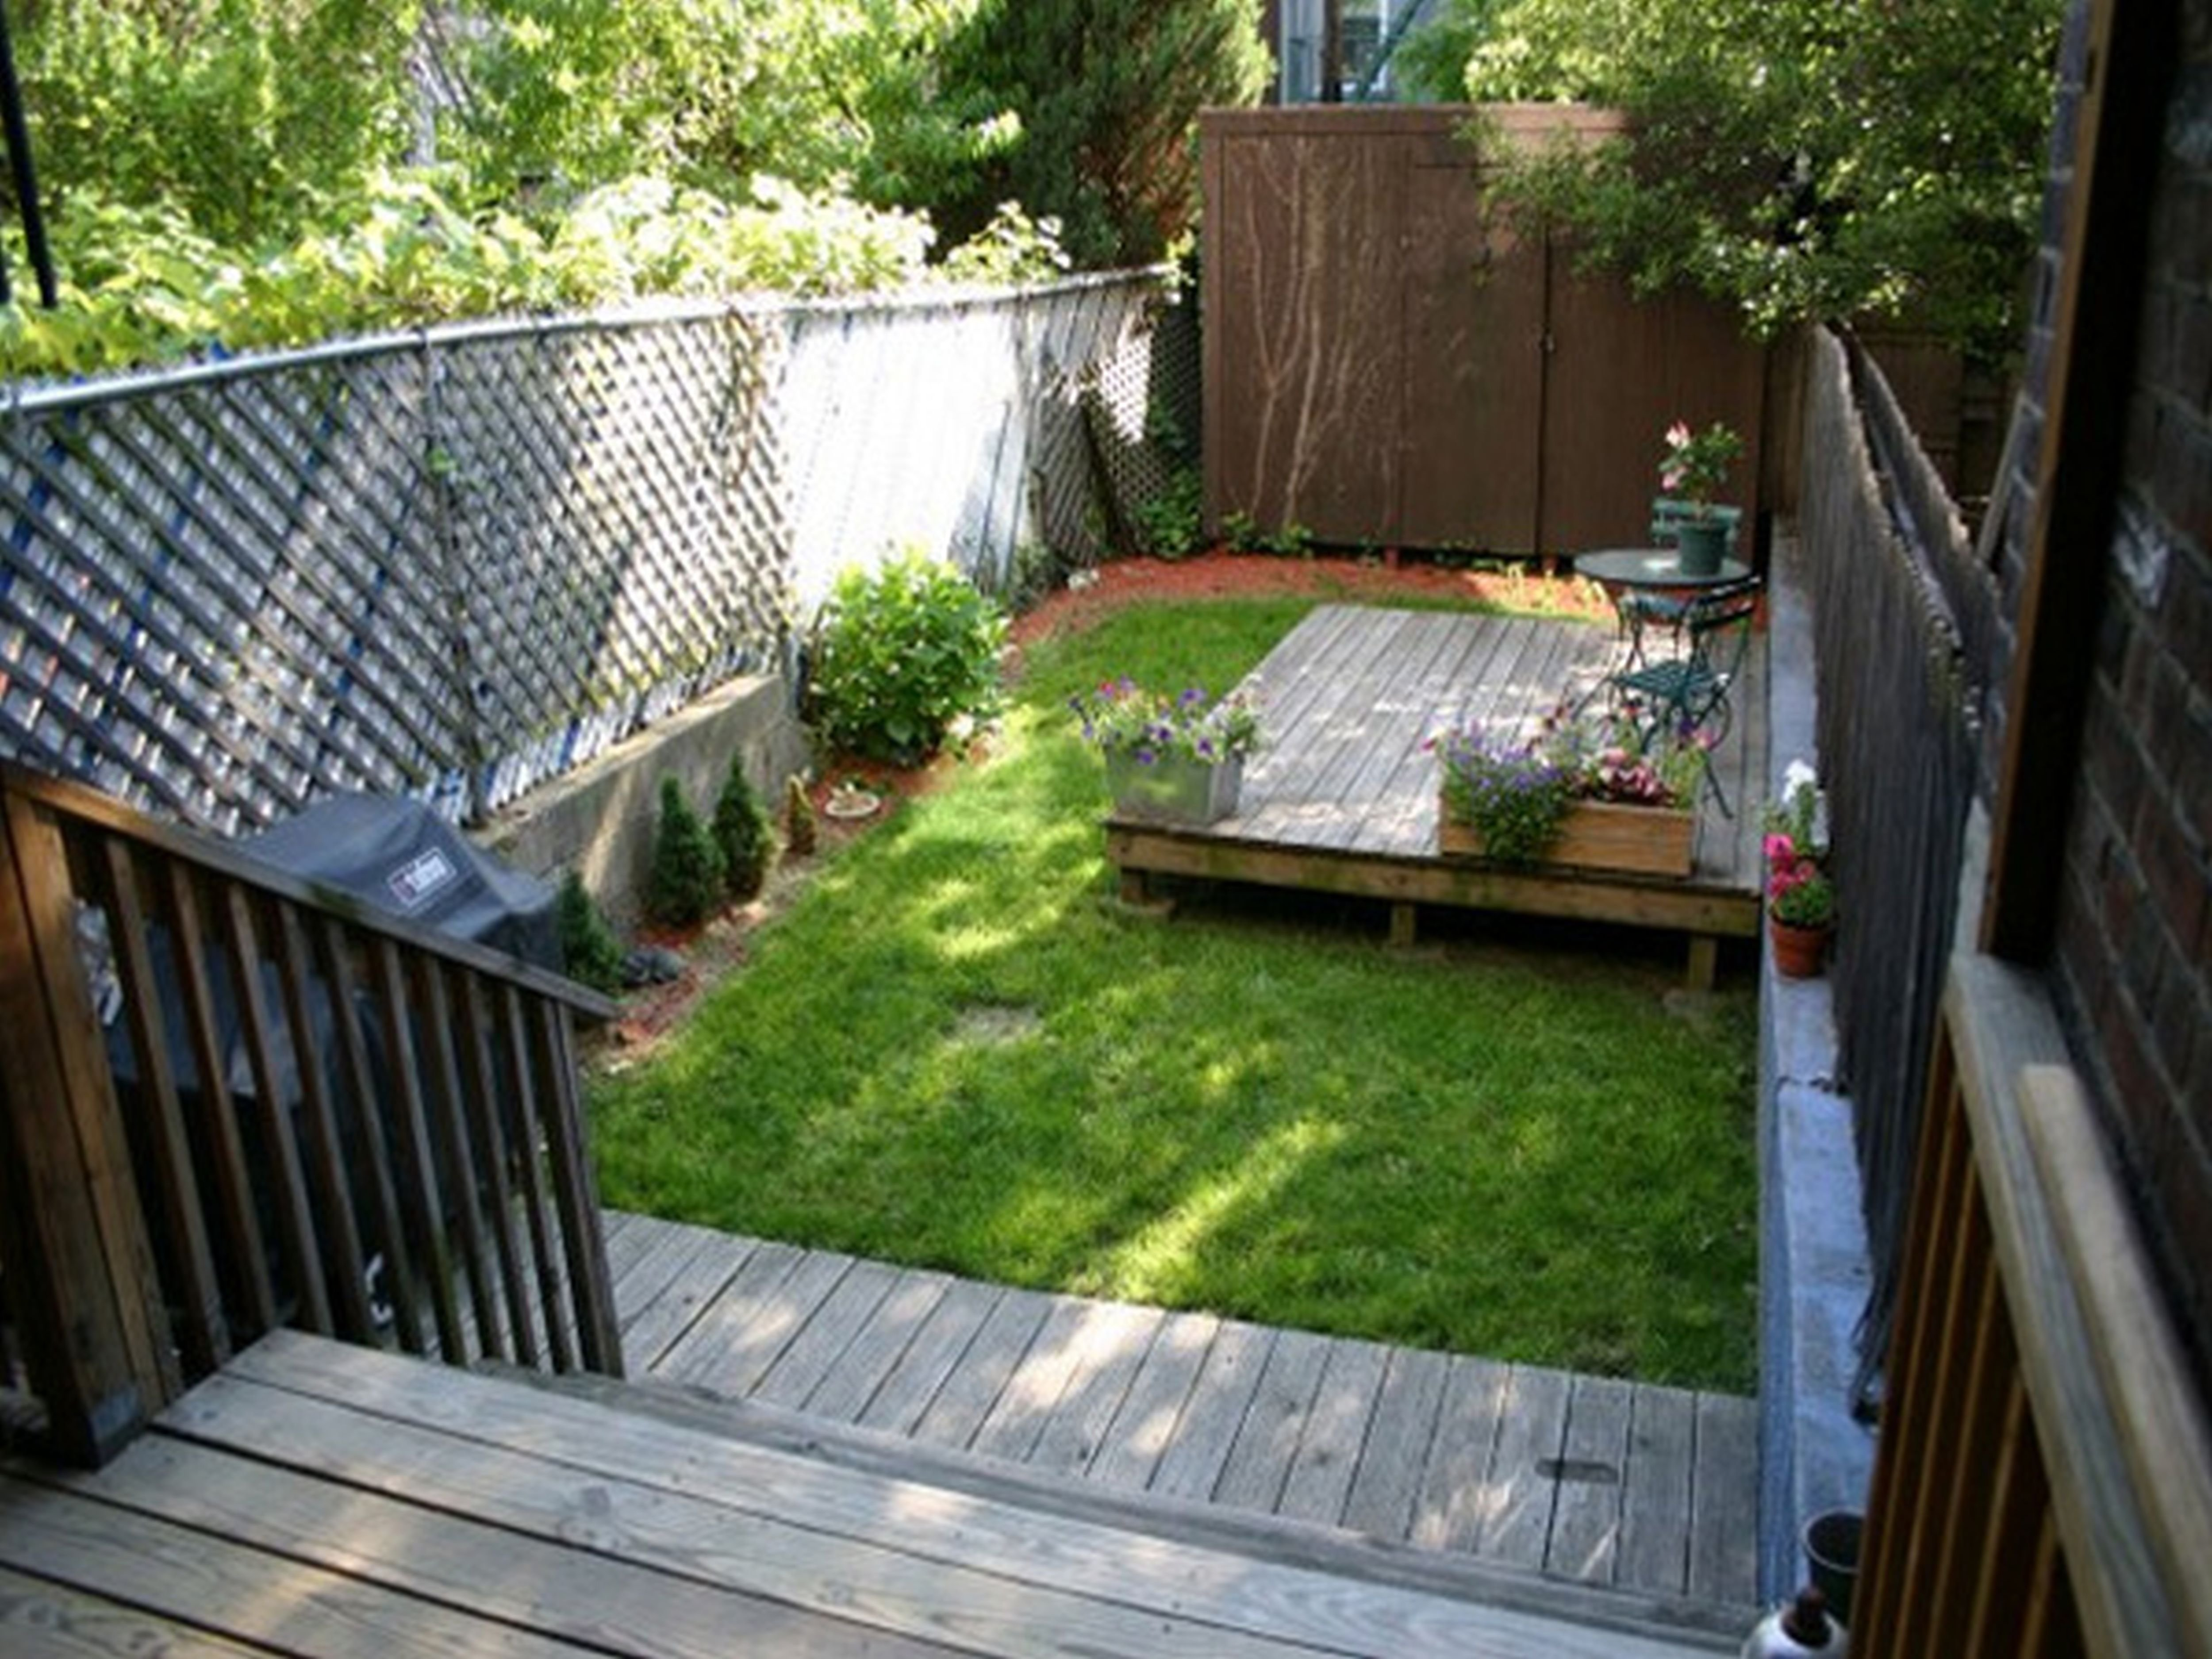 10 Stylish Landscape Ideas For Small Yards garden garden from small yard ideas urban small backyard garden for